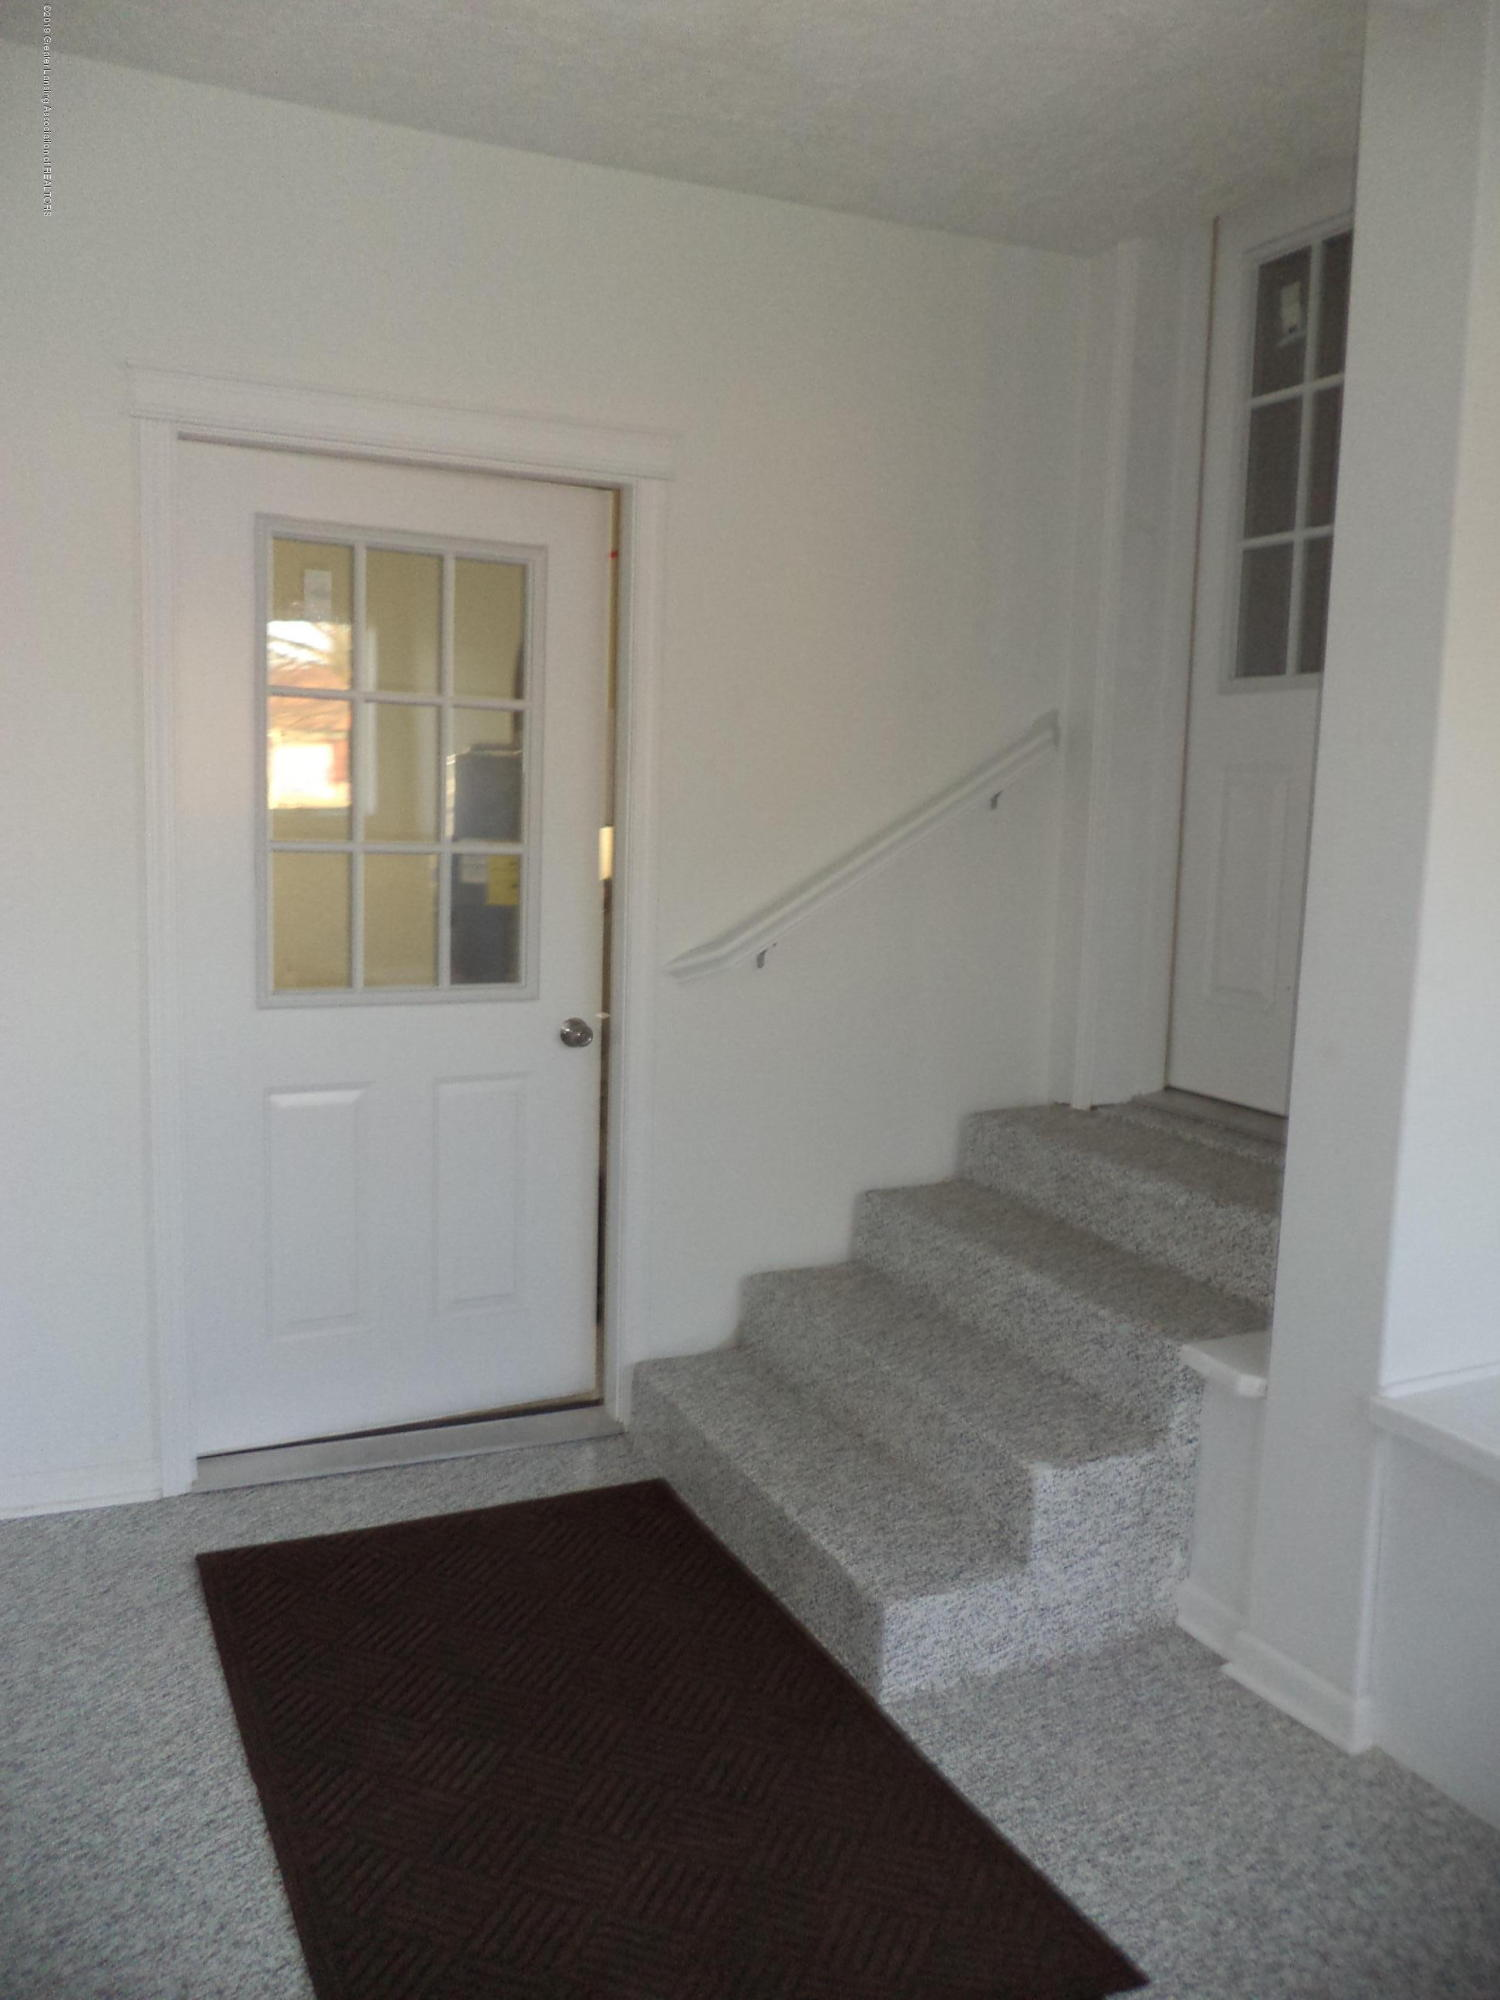 3200 S Dewitt Rd - Foyer area to laundry and inside house - 24